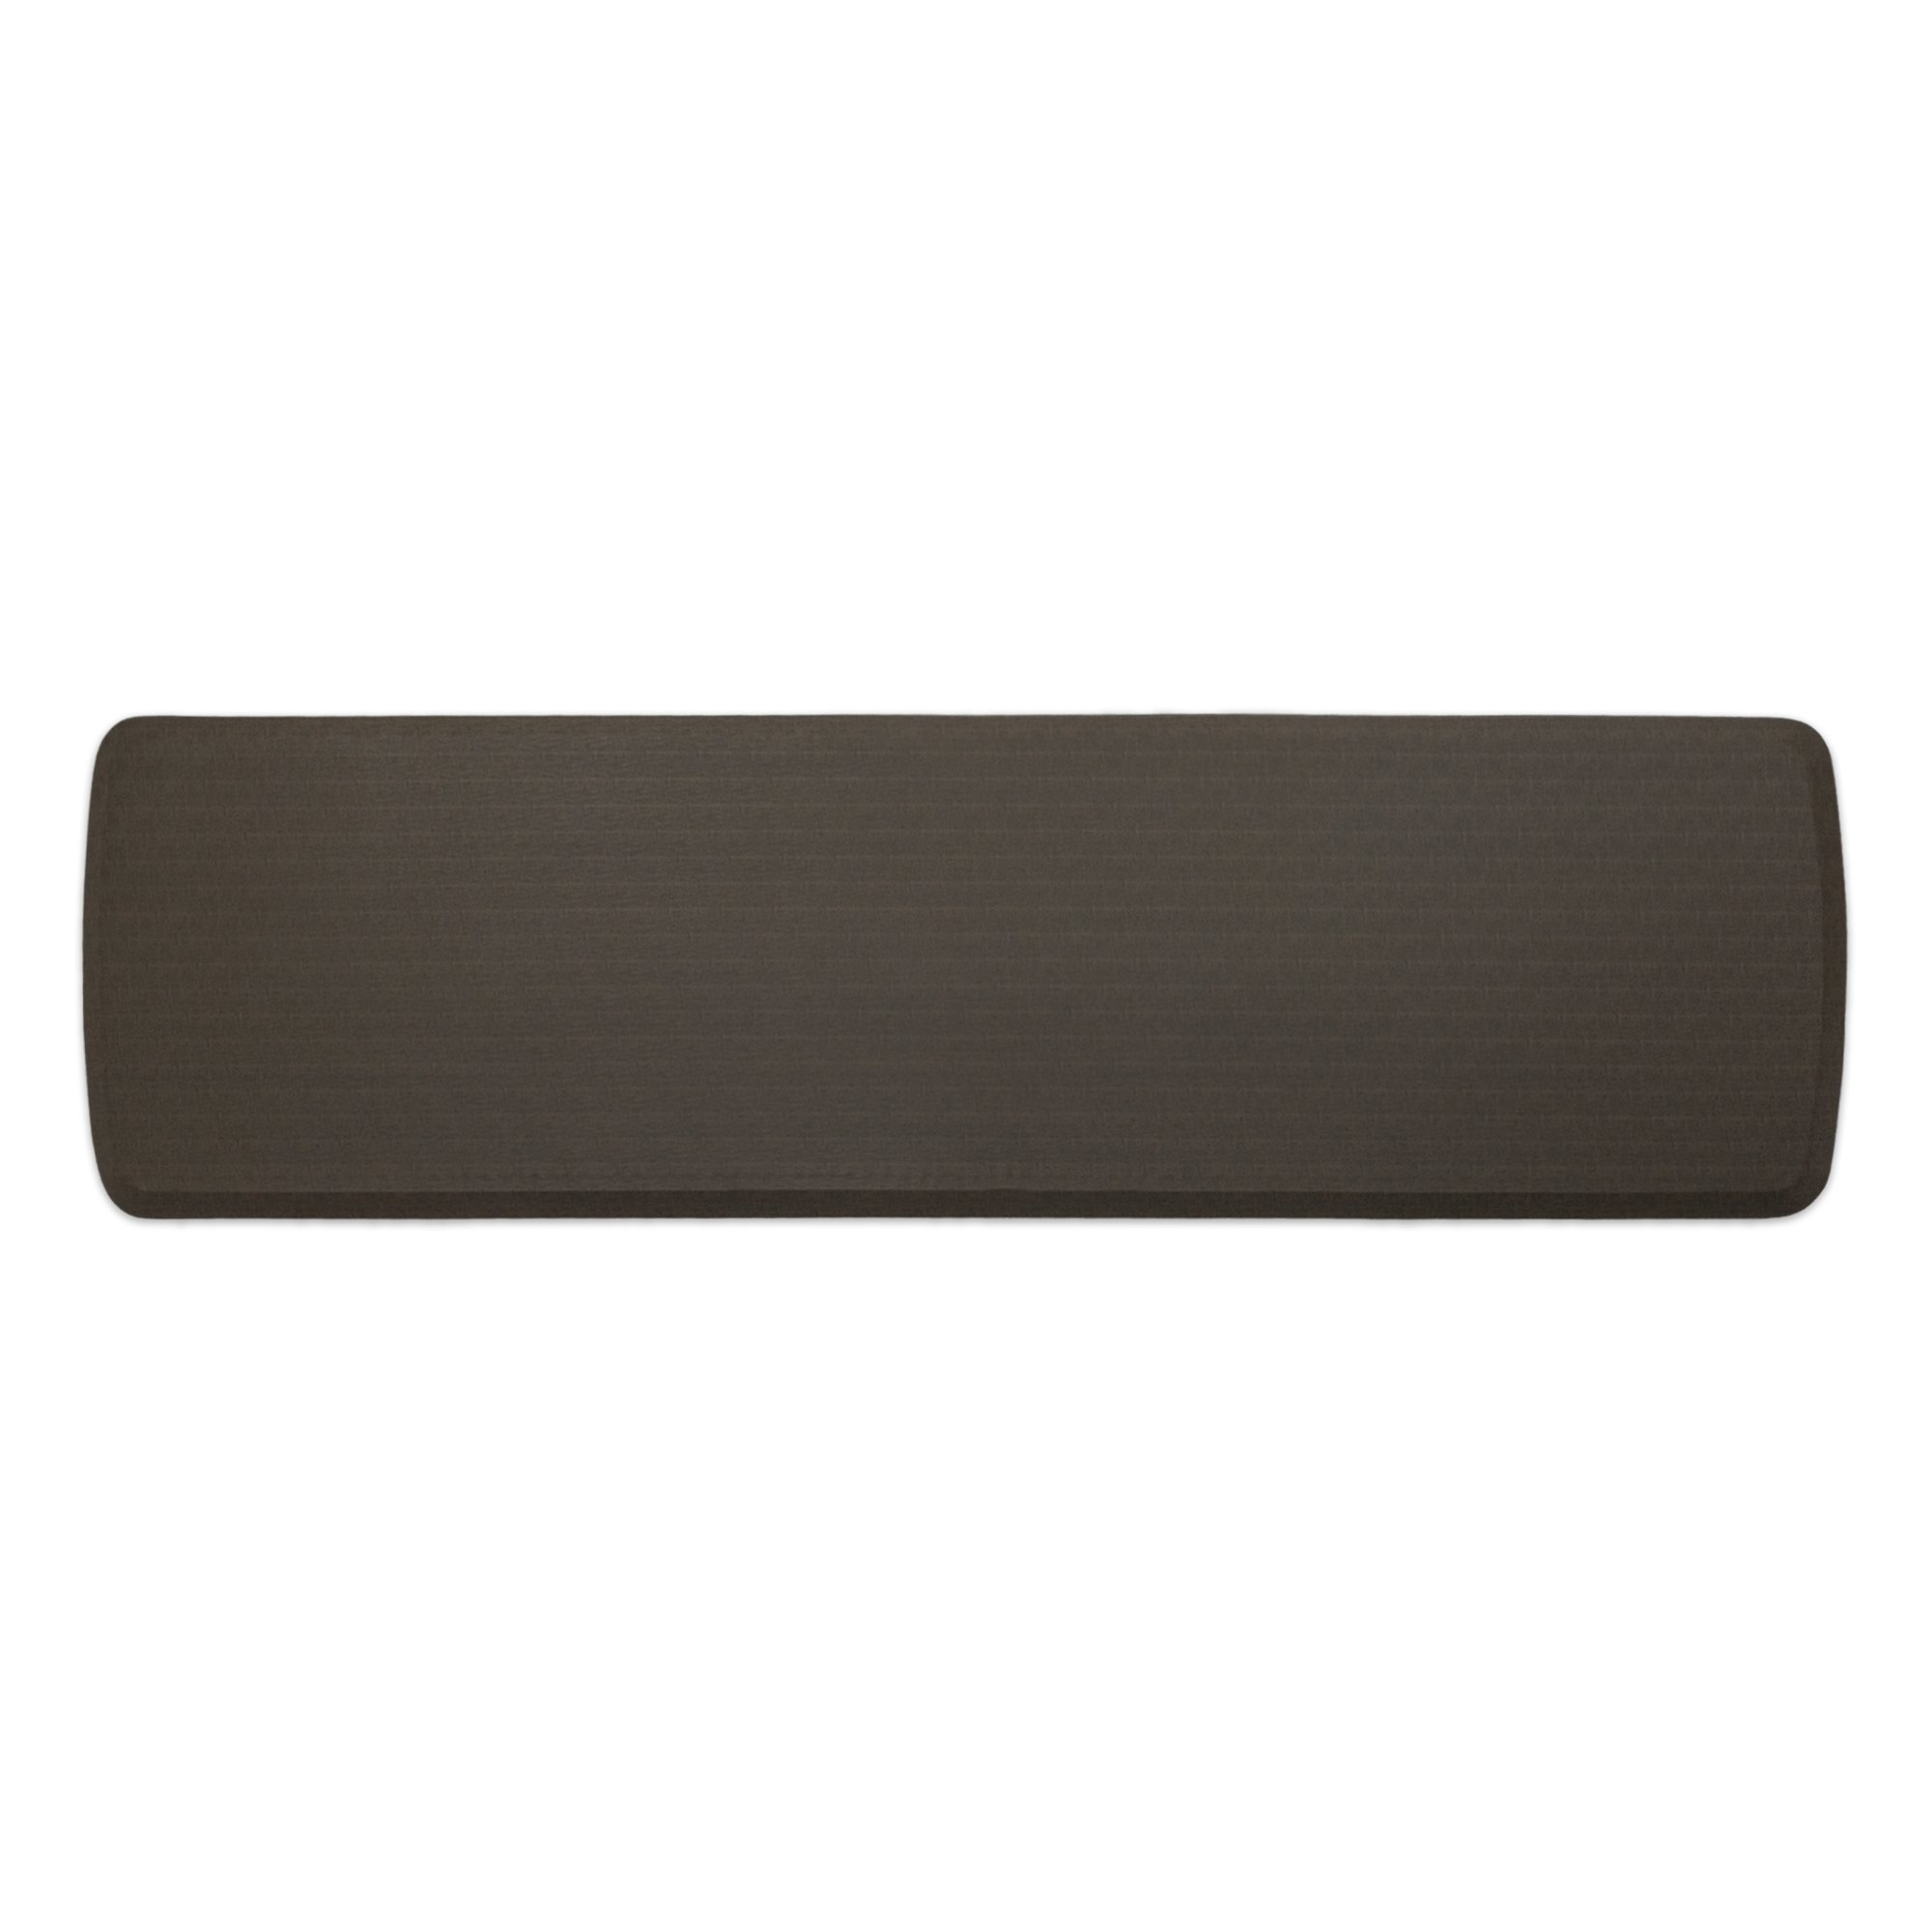 """GelPro Elite Premier Anti-Fatigue Kitchen Comfort Floor Mat, 20x72"""", Linen Granite Grey Stain Resistant Surface with Therapeutic Gel and Energy-return Foam for Health and Wellness"""